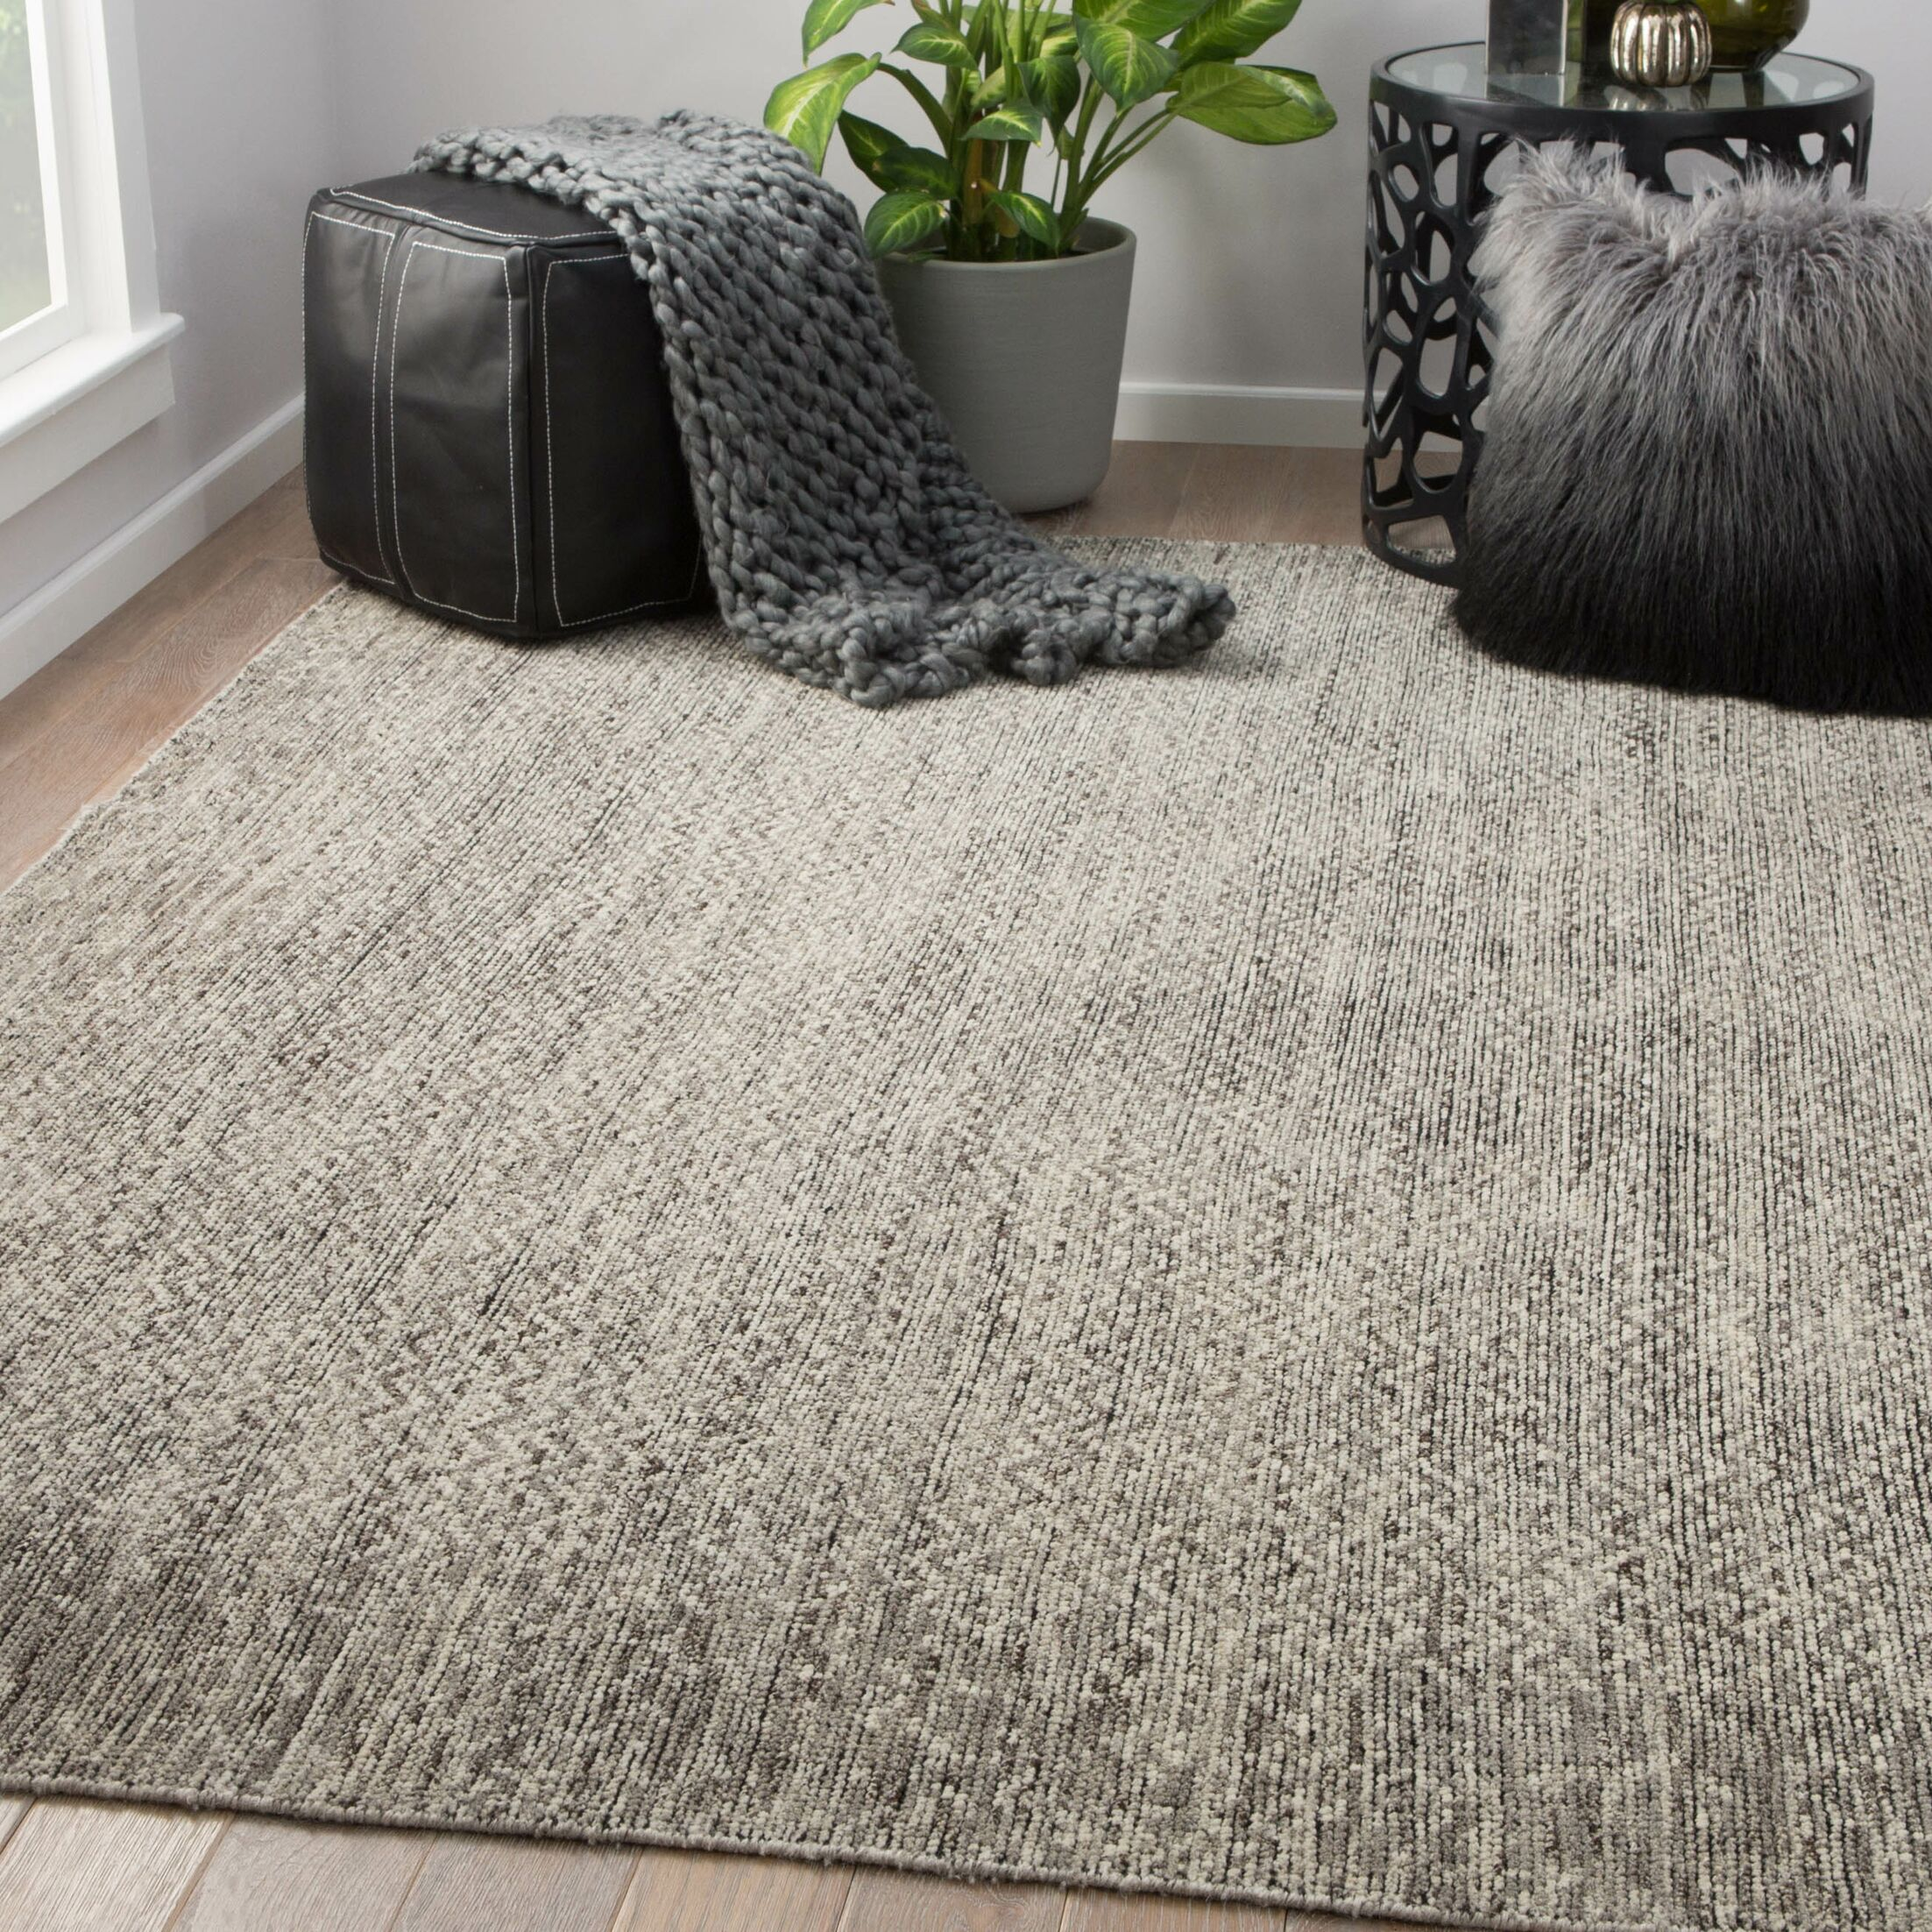 Magnuson Hand-Knotted Wool Fallen Rock/Oatmeal Area Rug Rug Size: Rectangle 8' x 10'